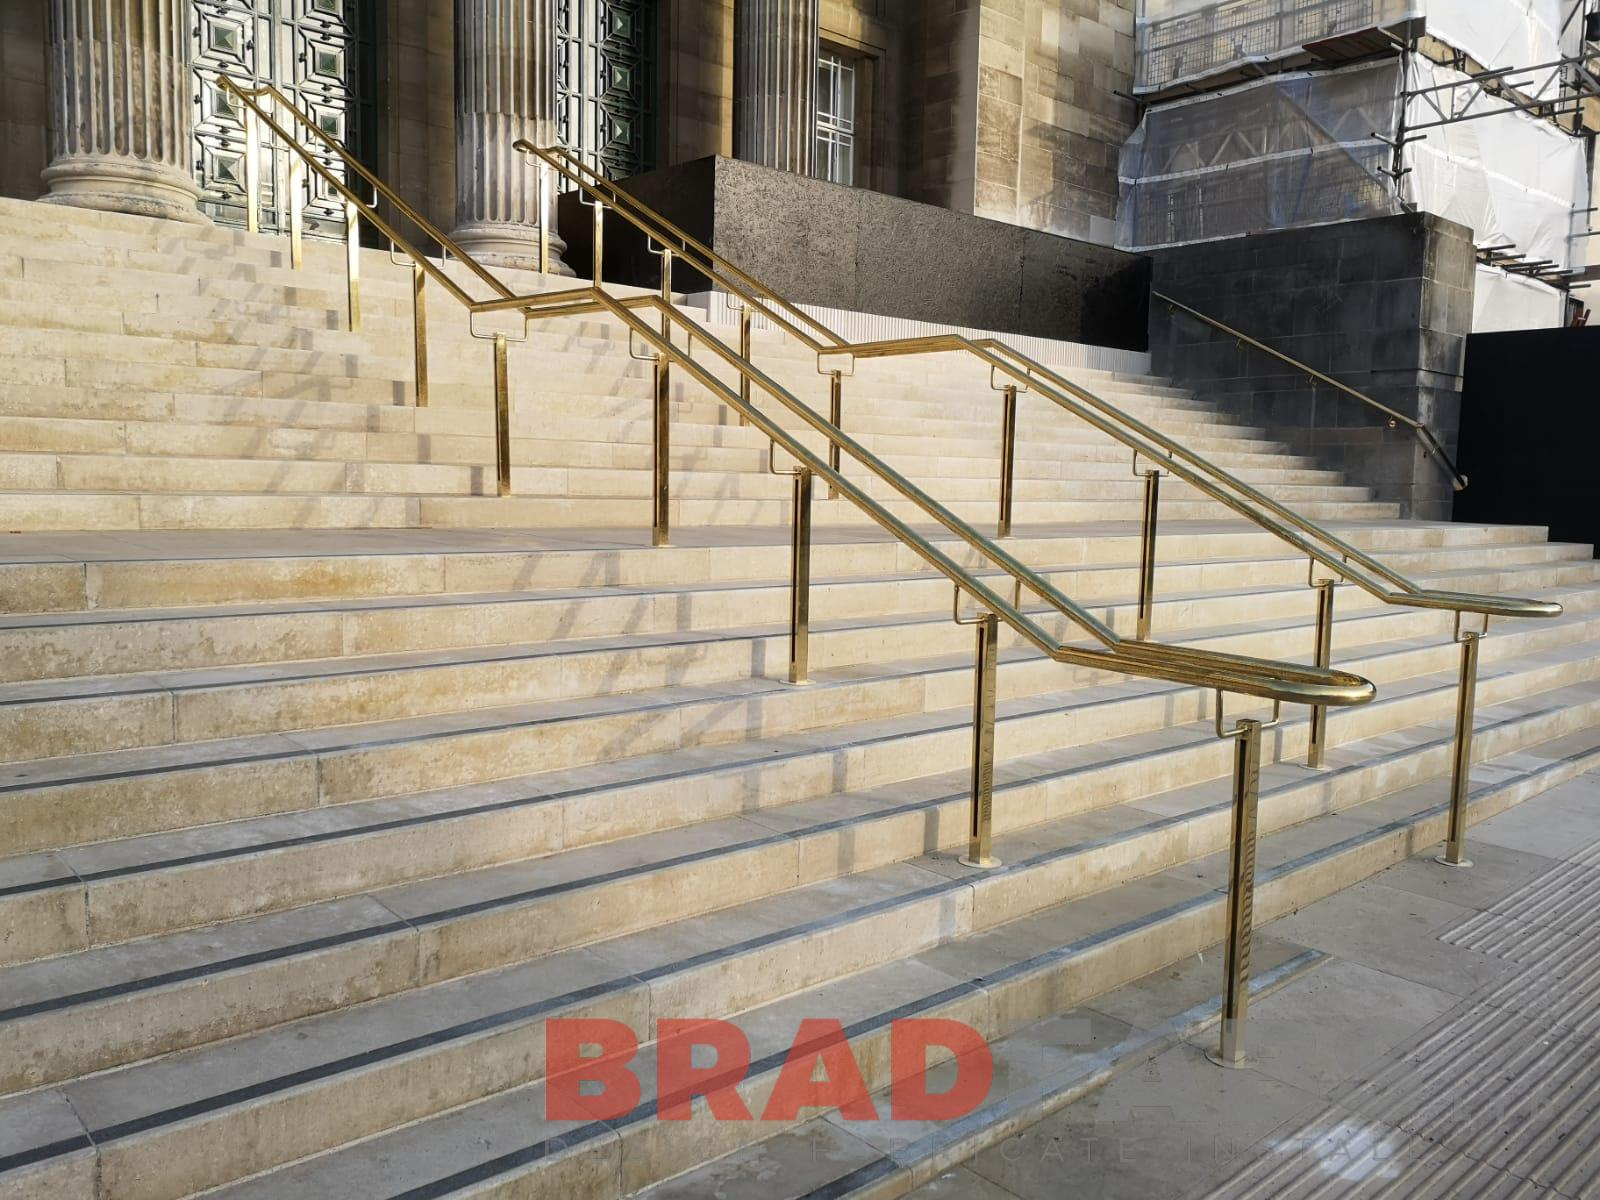 Brass handrails by Bradfabs